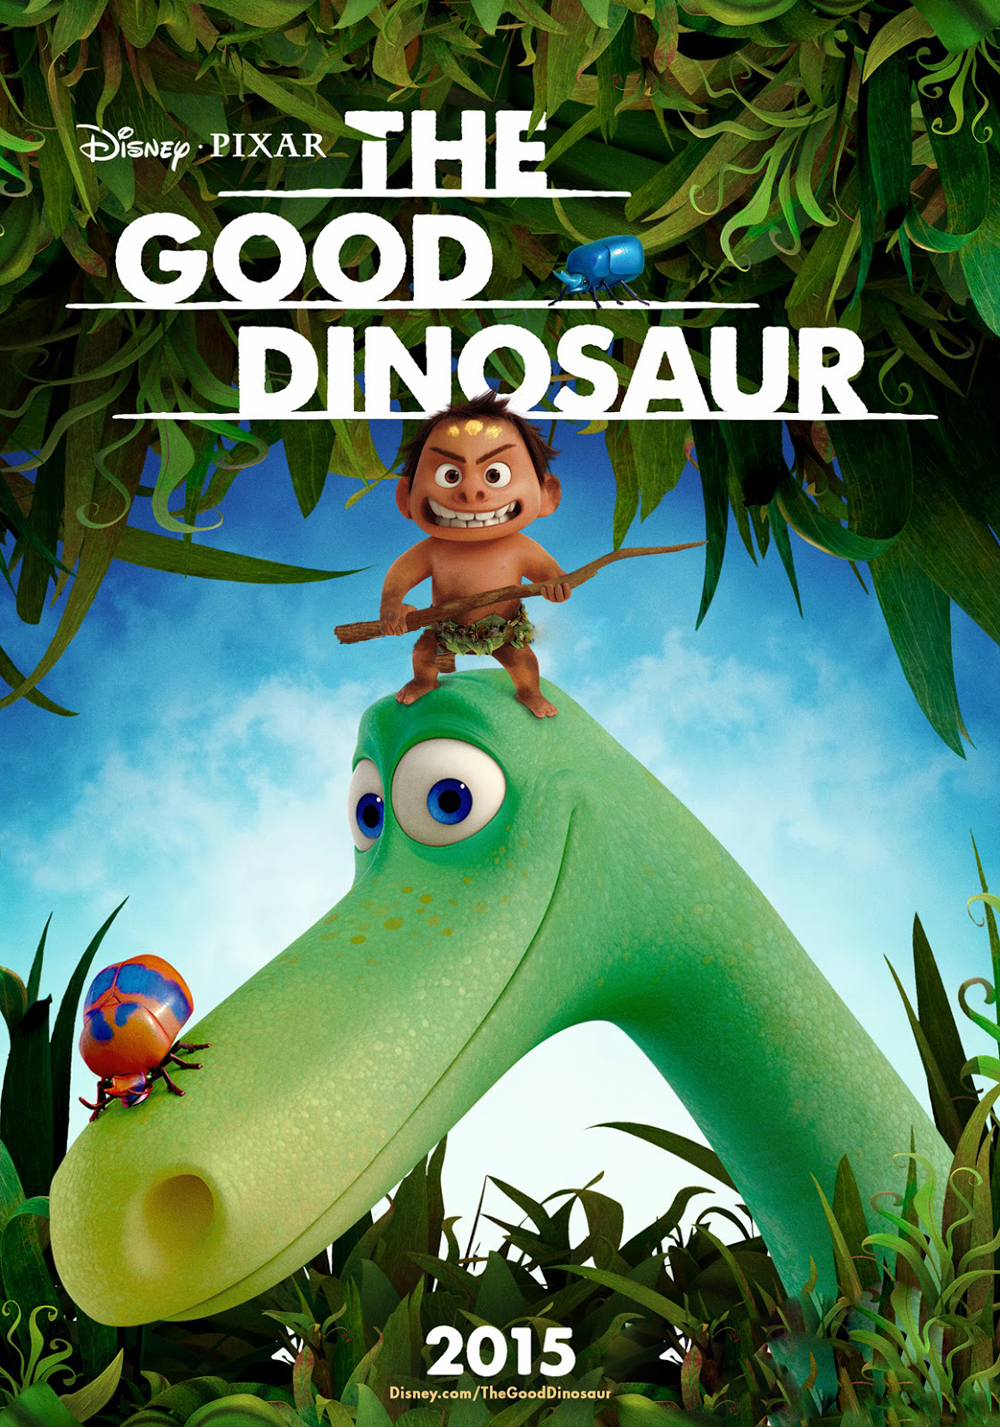 The Good Dinosaur Poster 2015